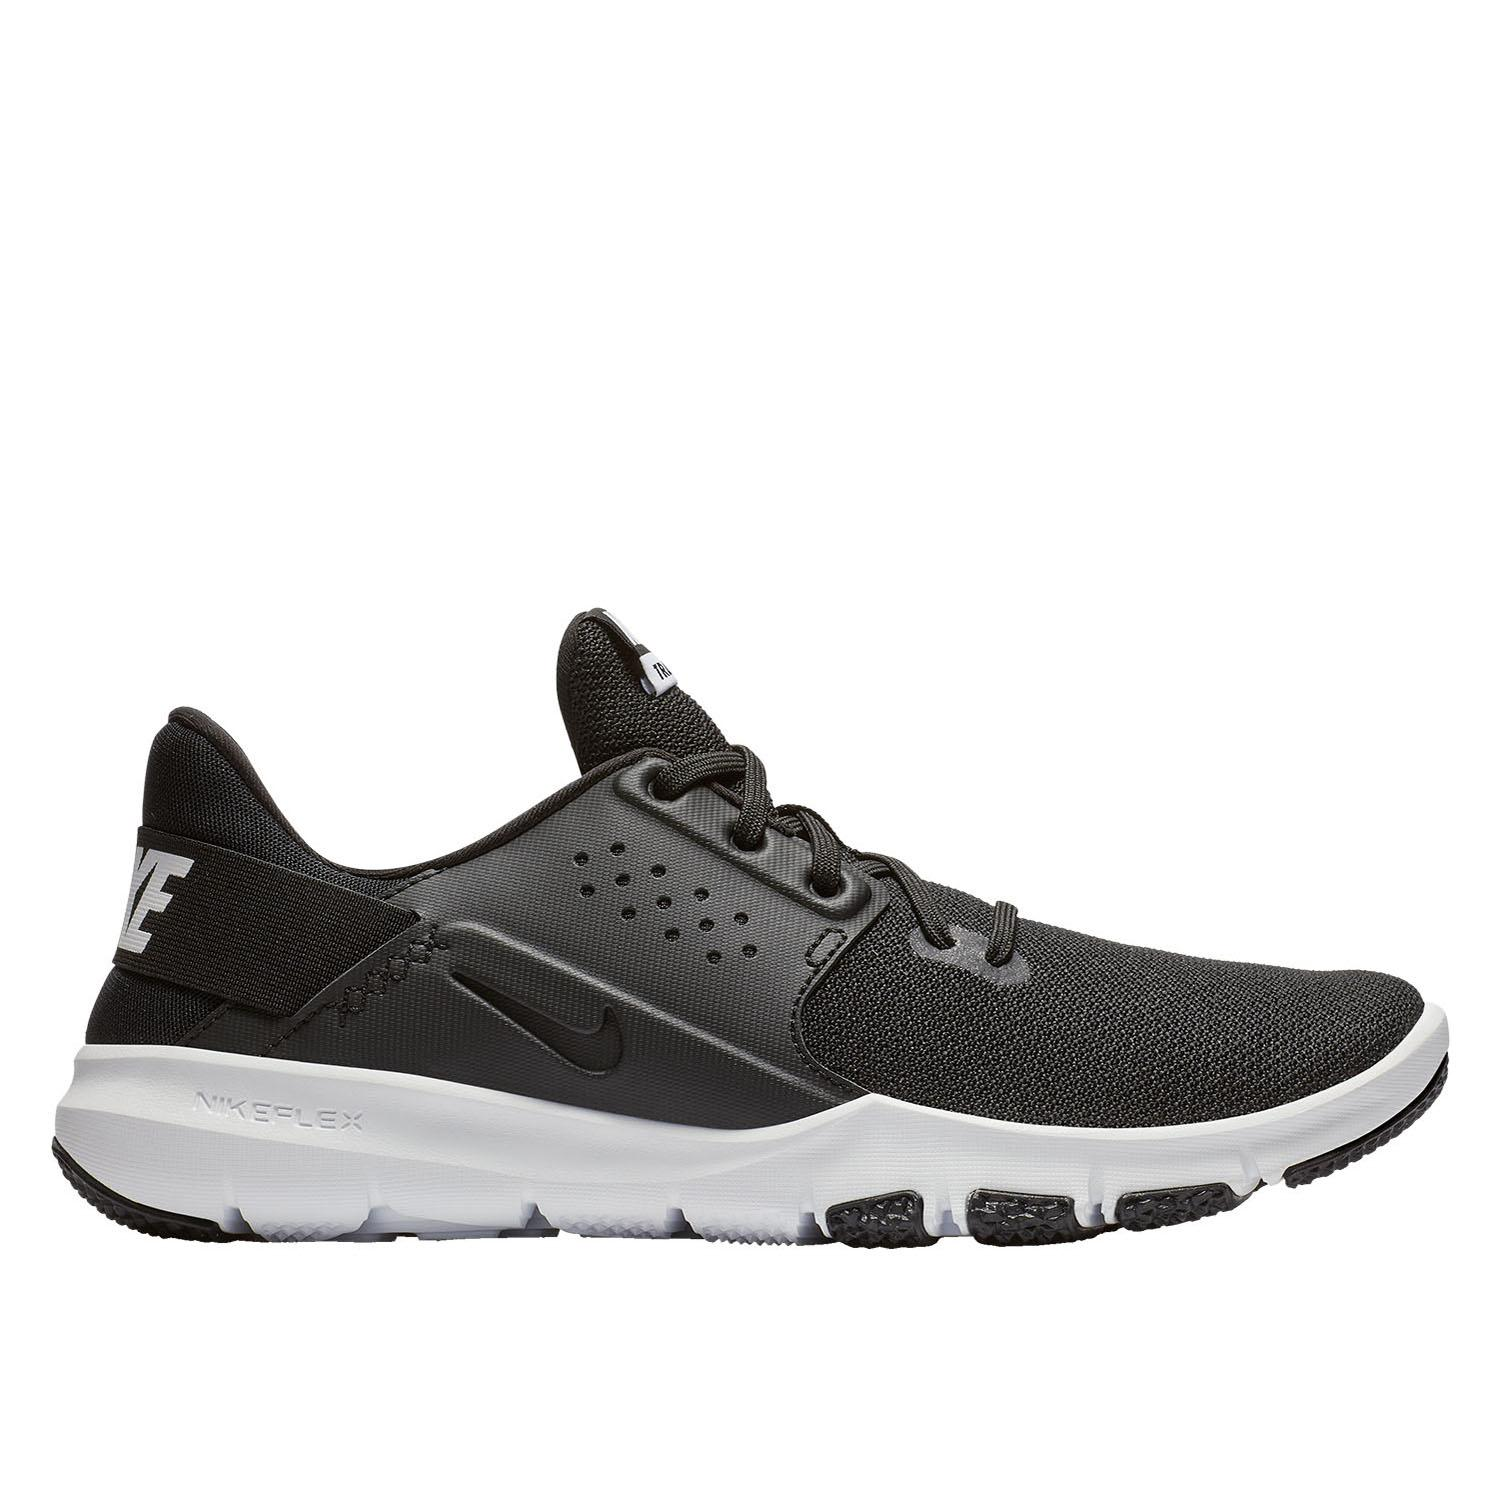 31323ce0b193 Nike Flex Control 3 Men s Training Shoe in Black - Intersport Australia